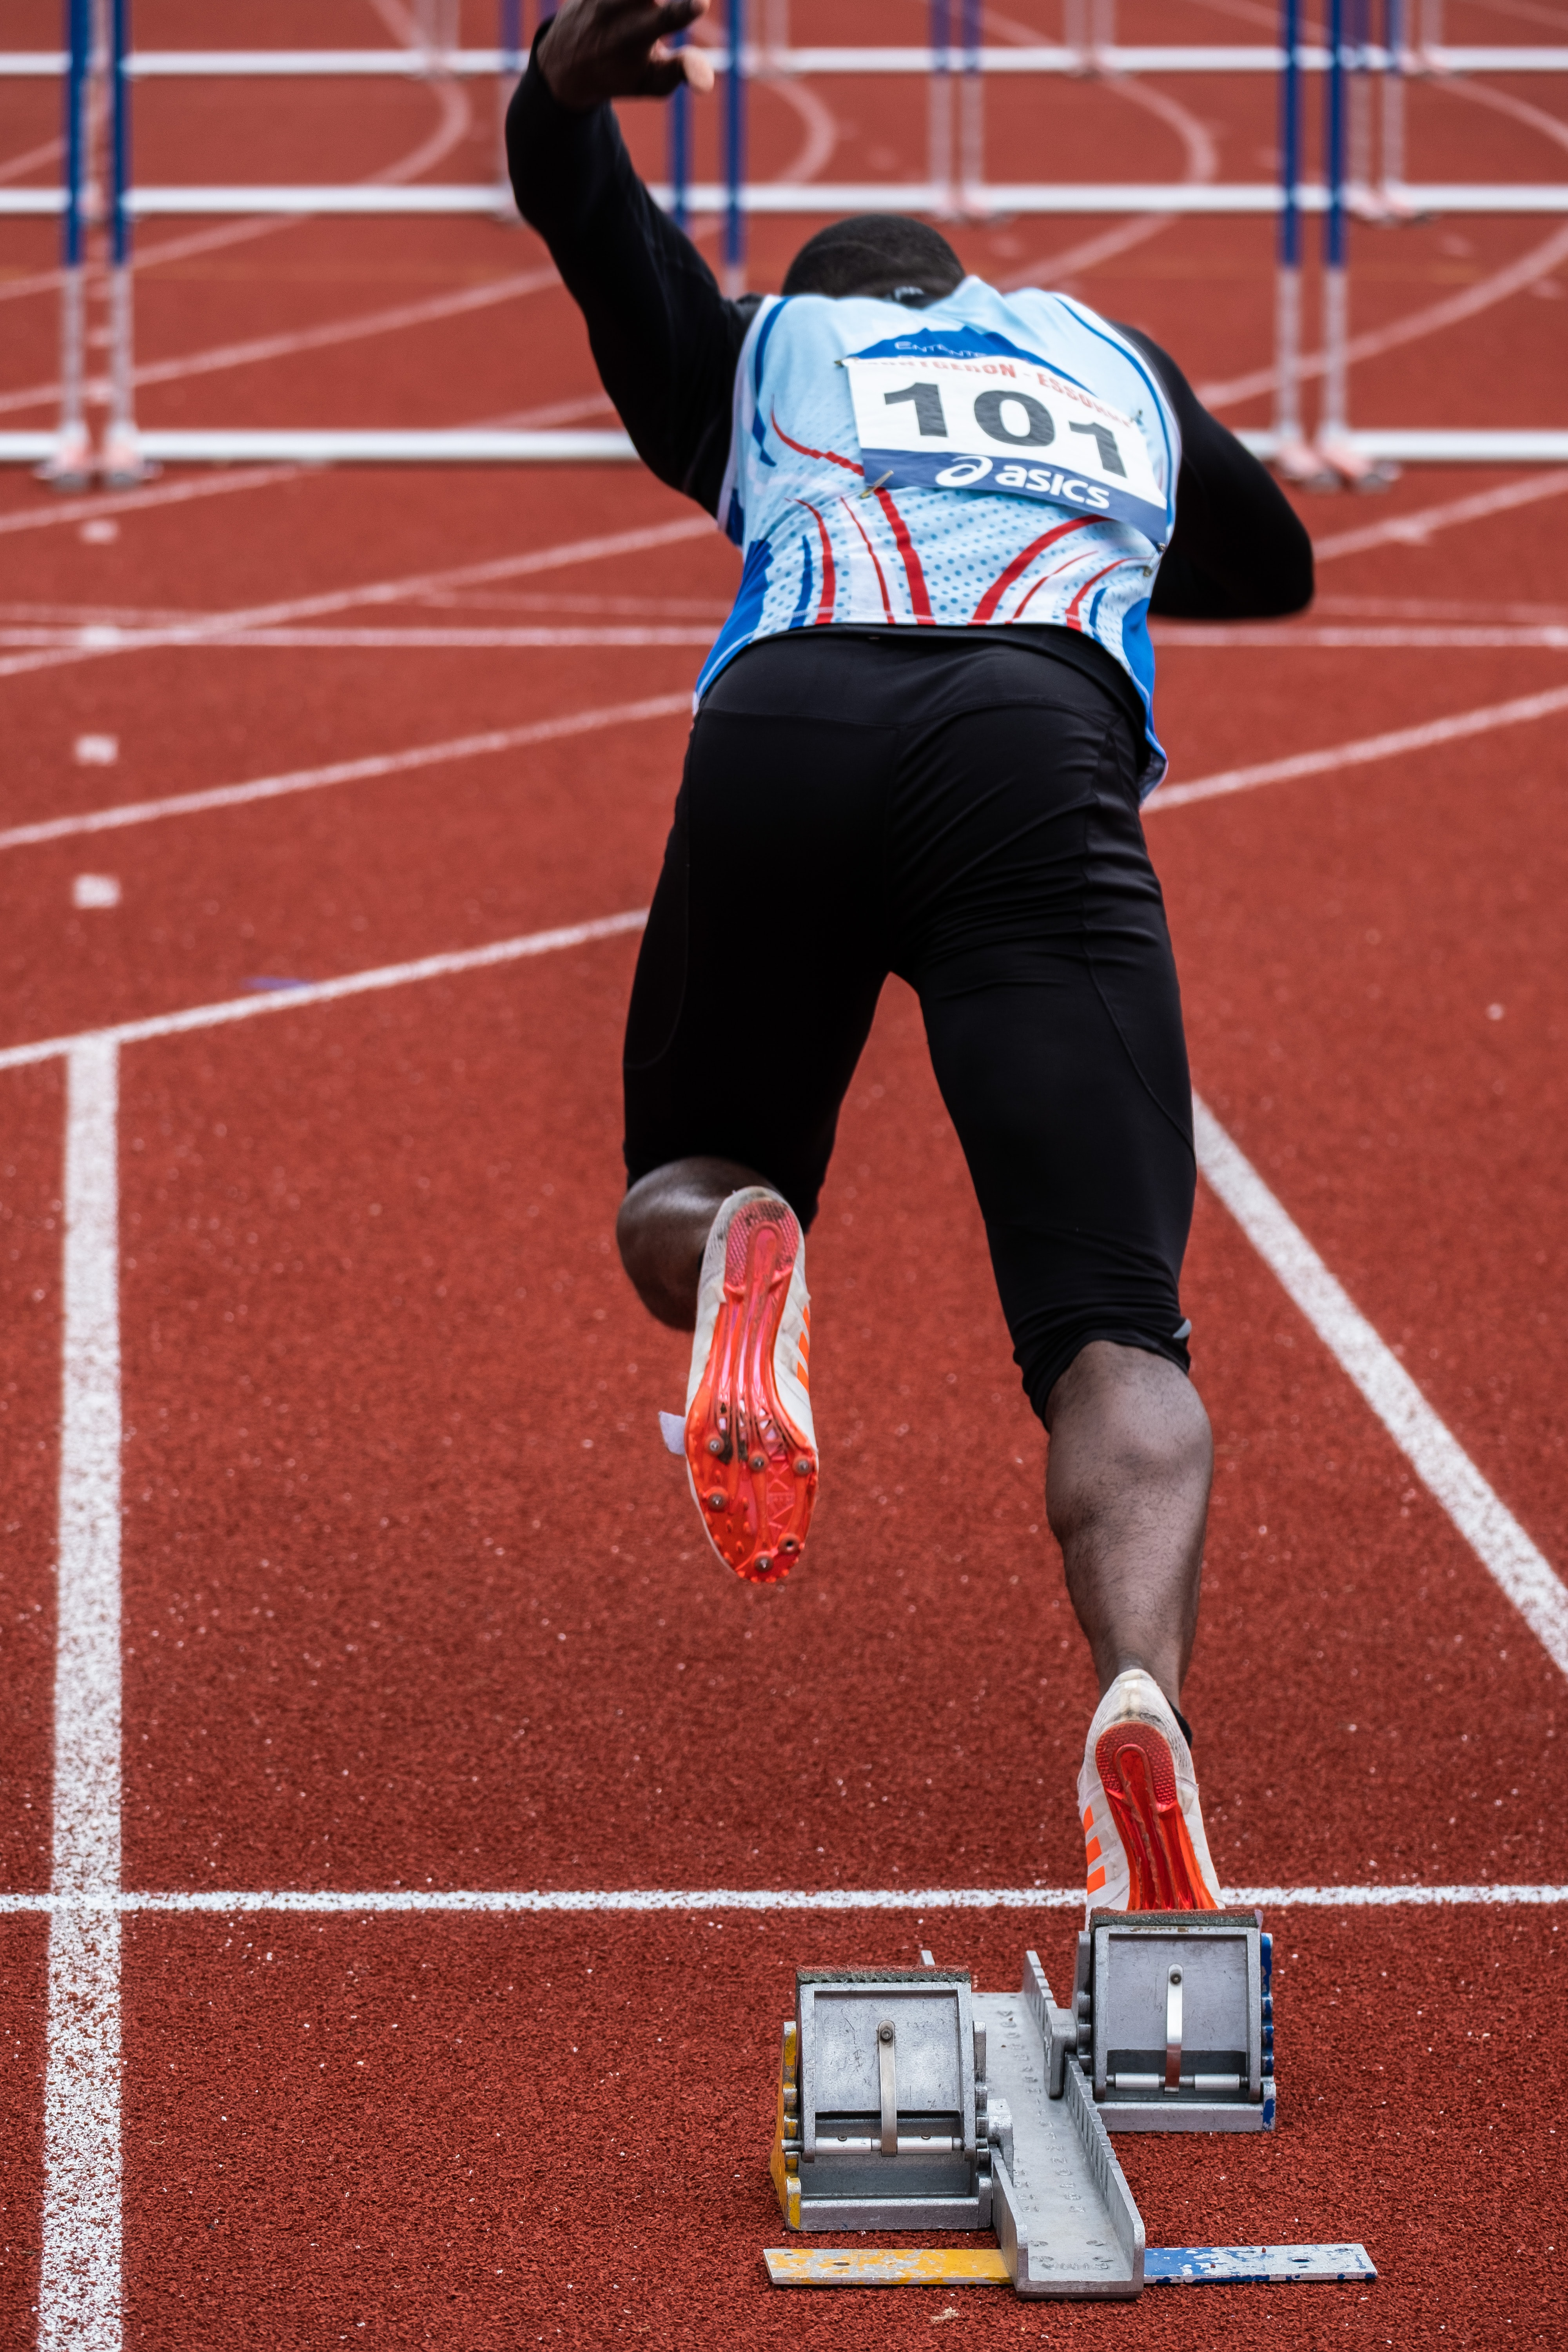 5 Famous Athletes from West London